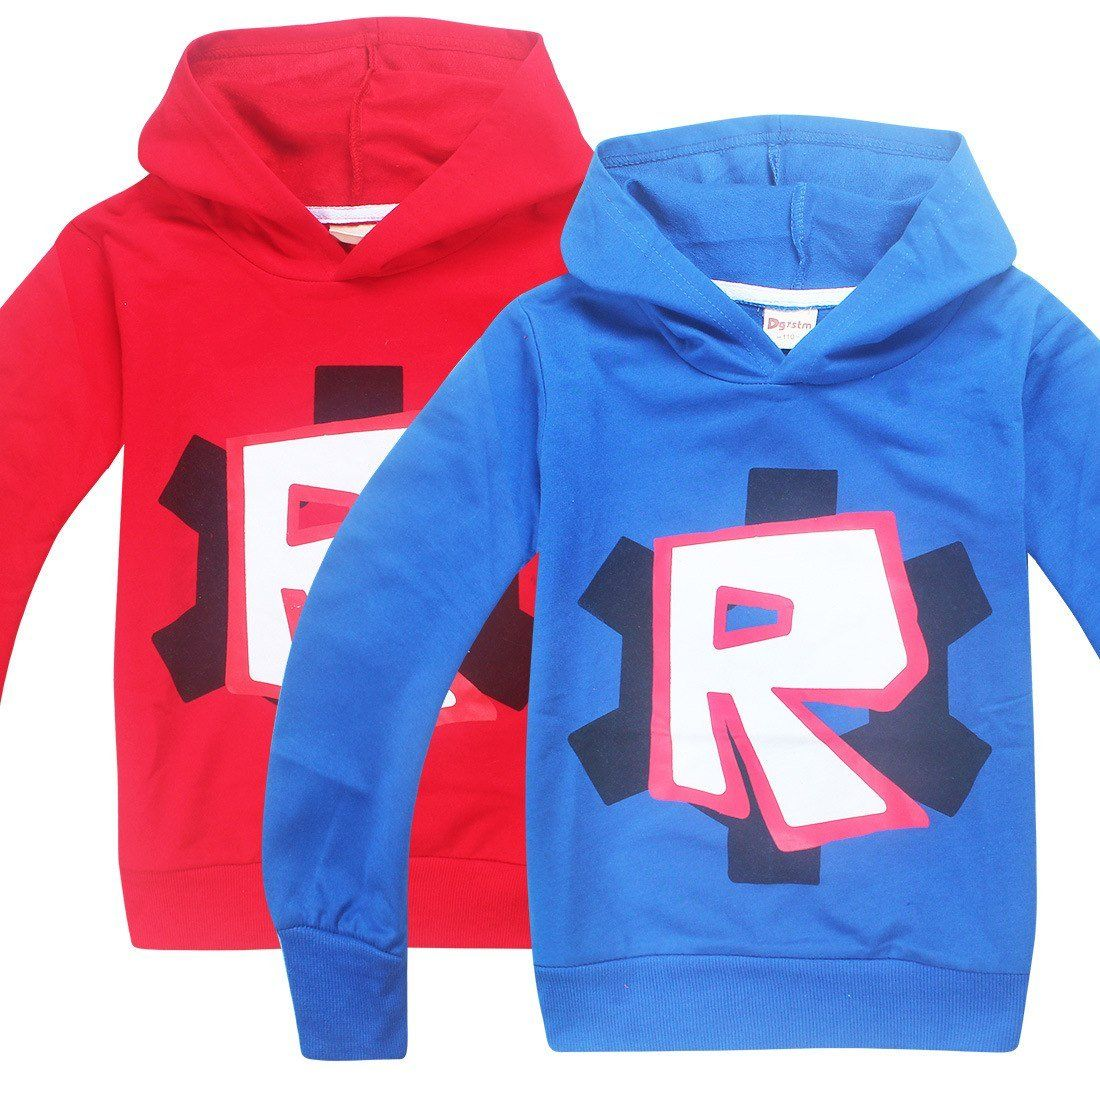 Roblox Hooded Cotton Sweatshirts For Boy S And Girl S Boys Long